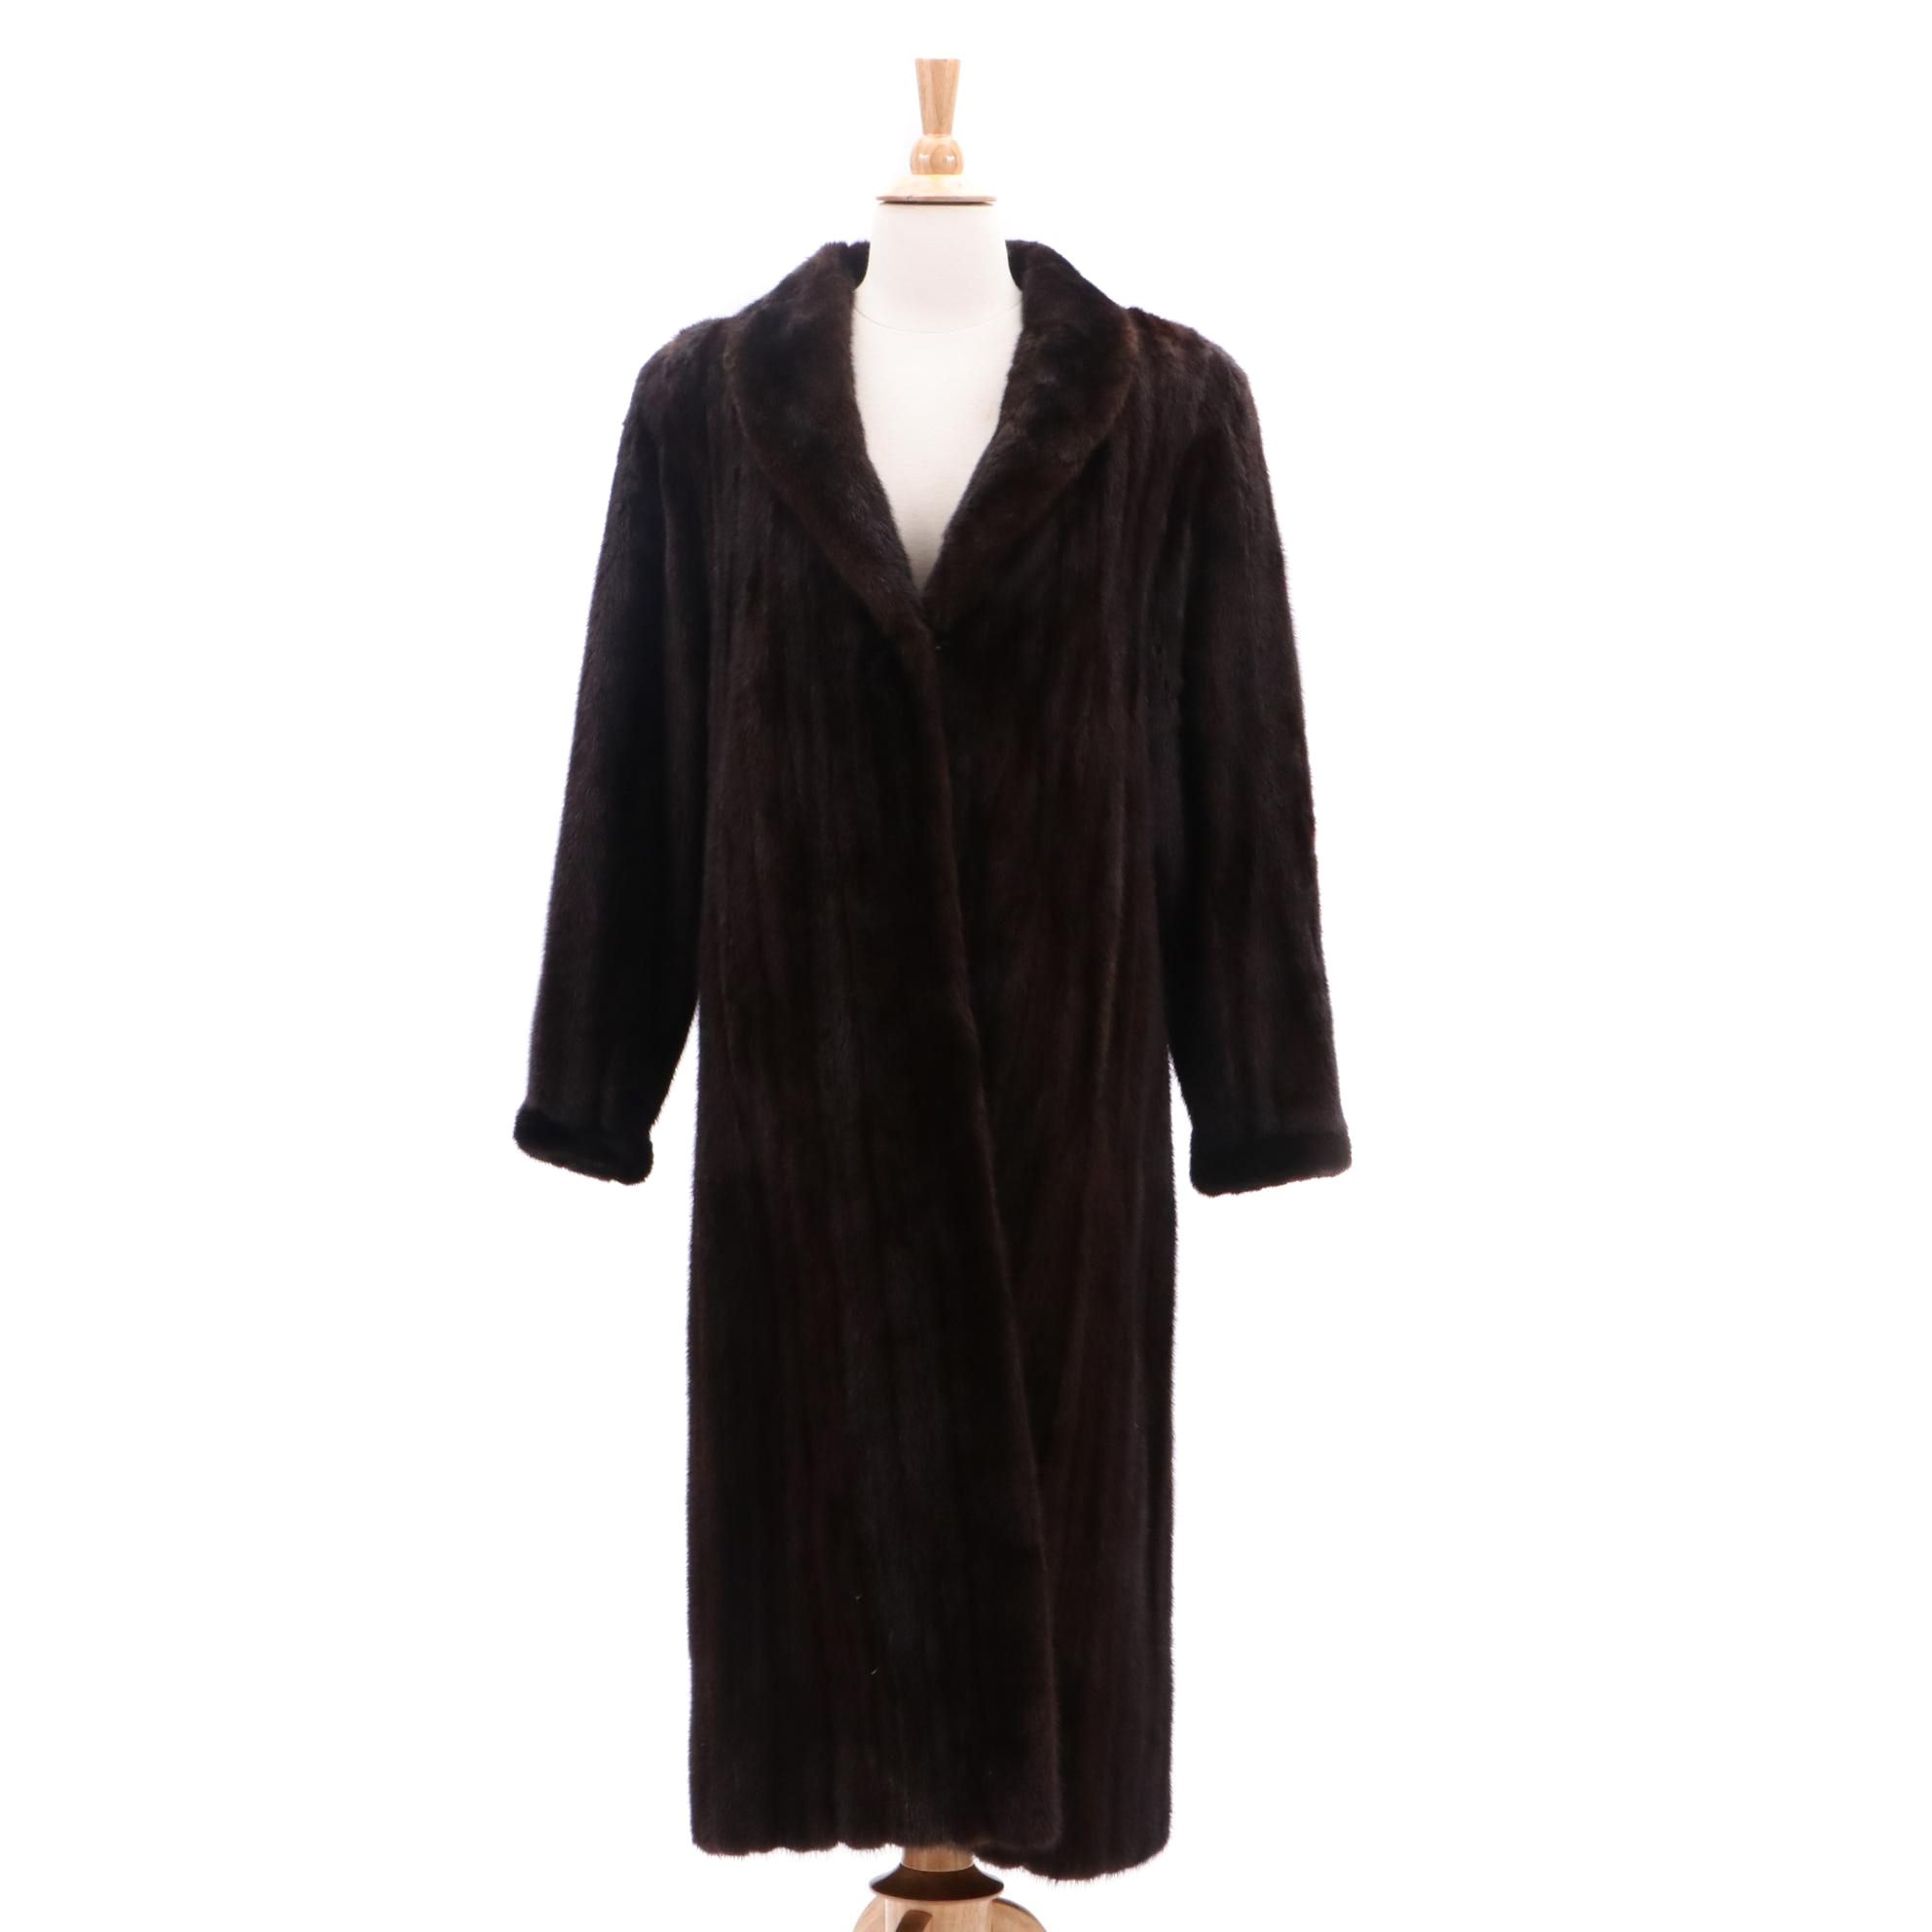 Women's Kotsovos Mink Fur Coat